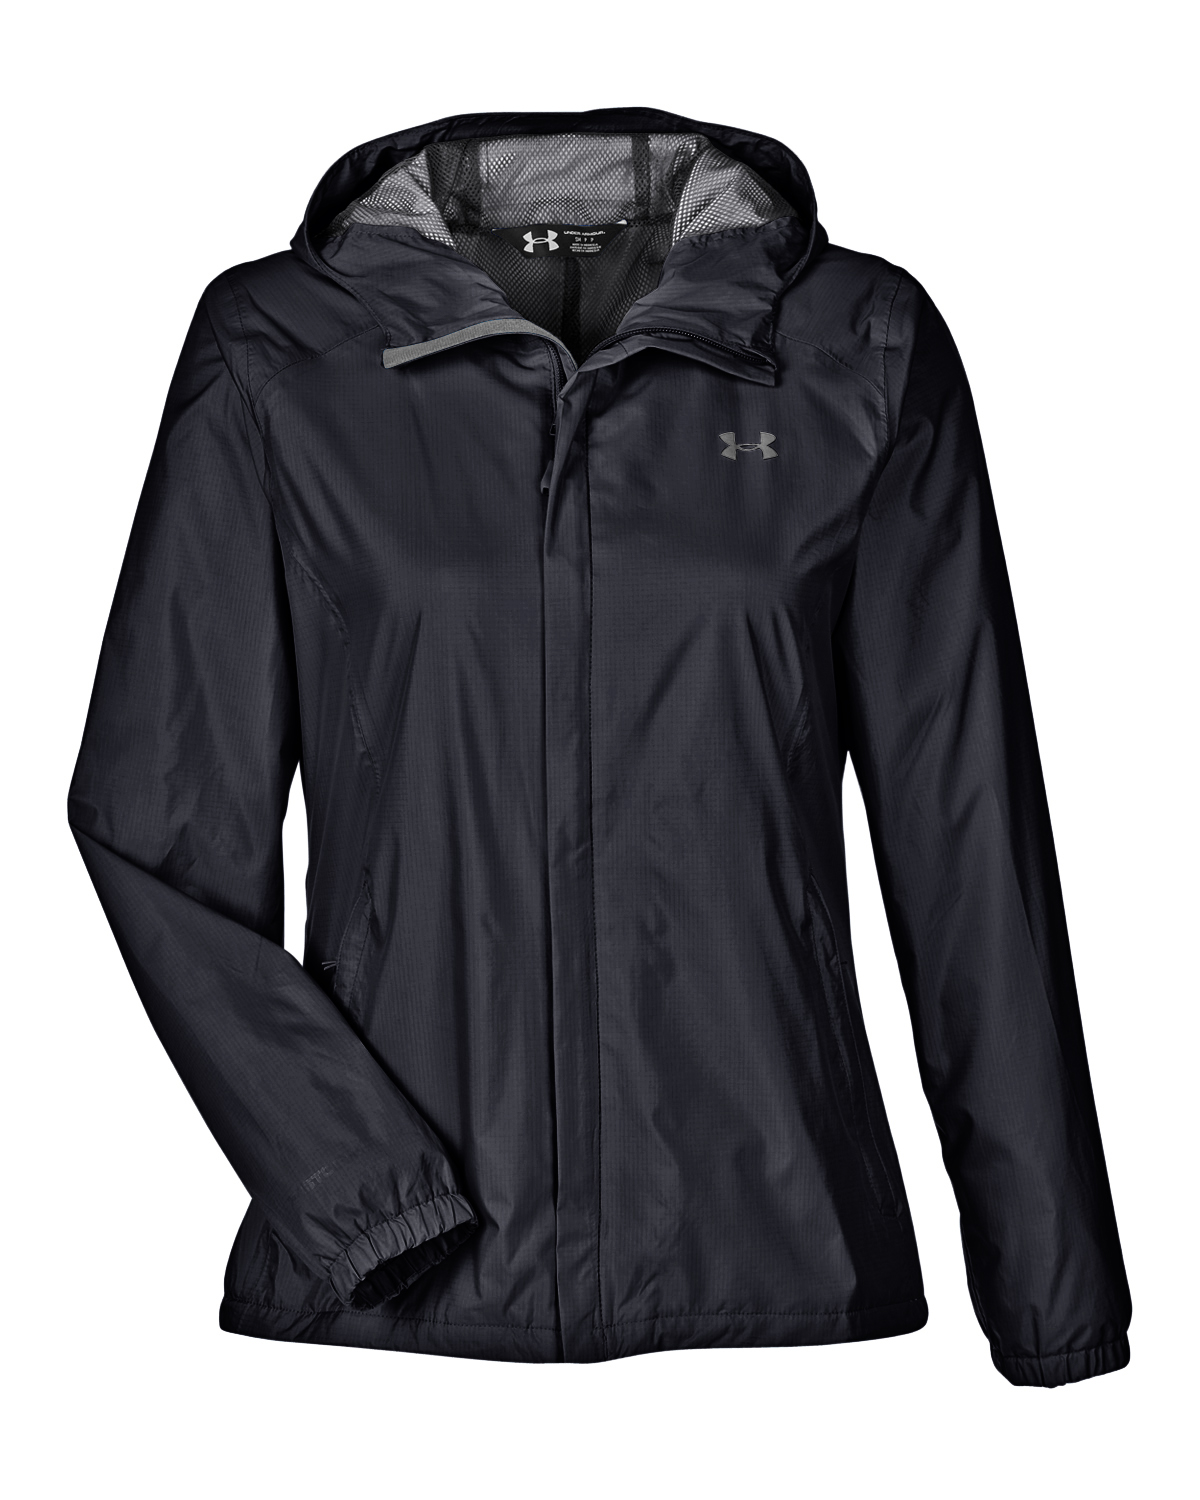 Under Armour 1291966 - Ladies' US Bora Rain Jacket